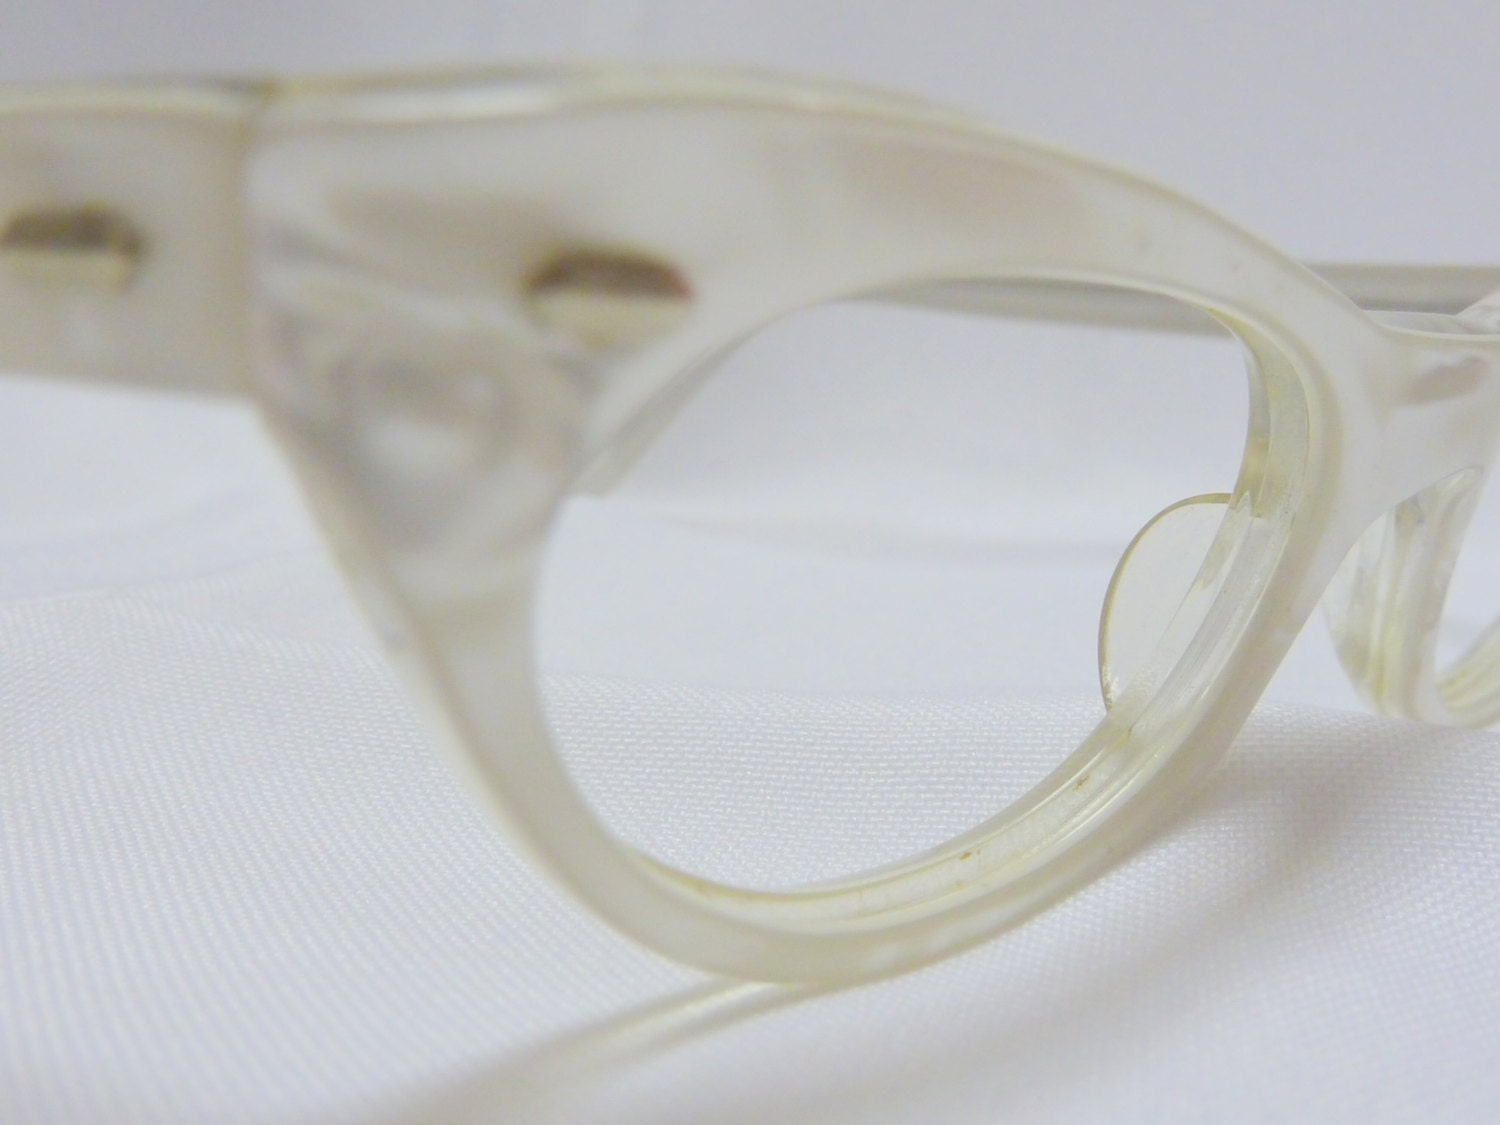 Eyeglass Frames With Pearls : Mother of Pearl France Cat Eyeglasses SWANK 1950s Retro